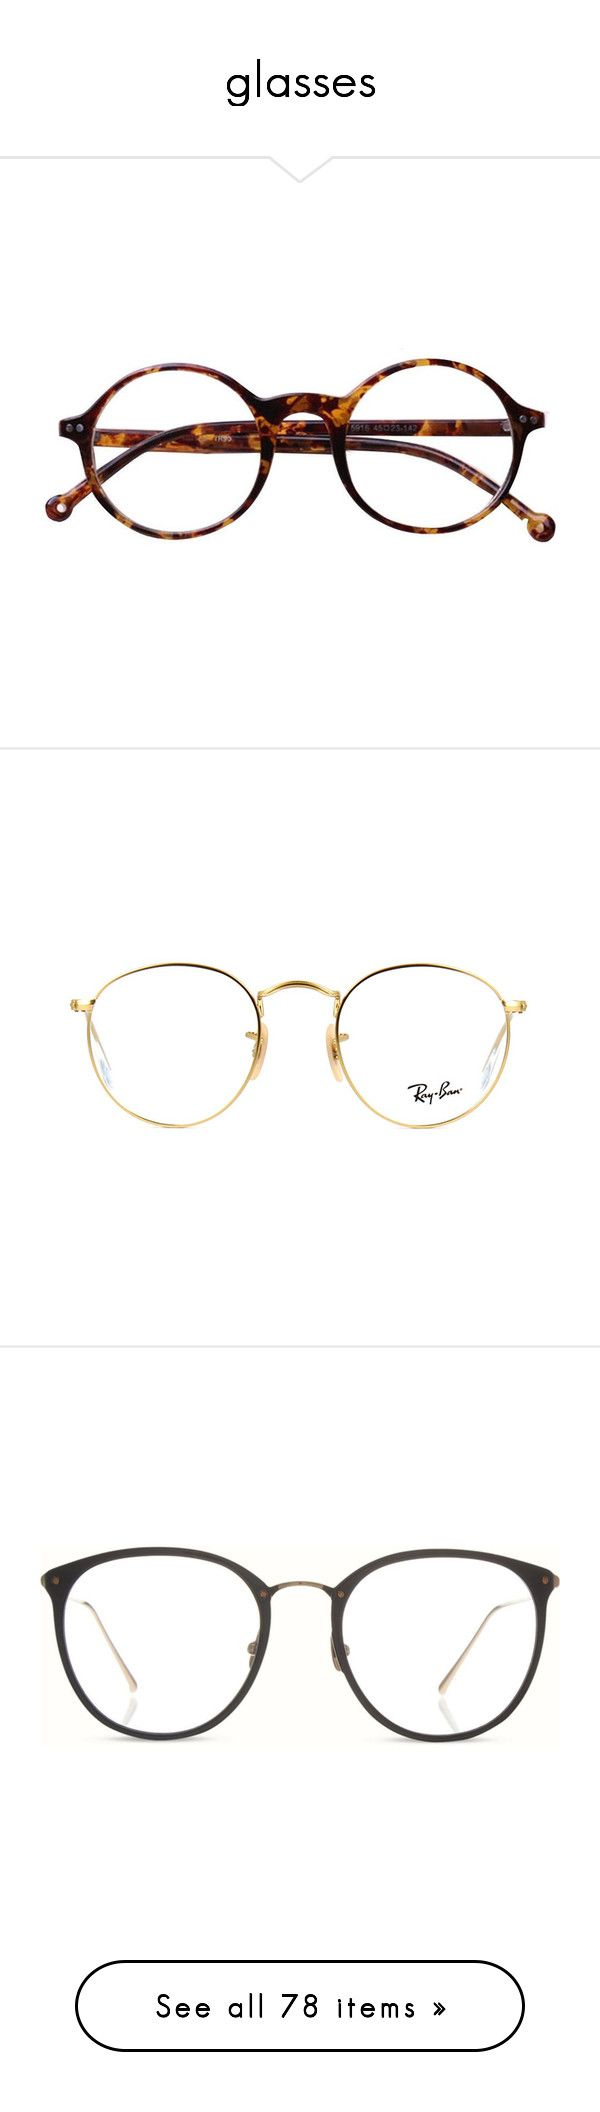 """glasses"" by sabina-127 ❤ liked on Polyvore featuring accessories, eyewear, eyeglasses, glasses, sunglasses, fillers, sports eyewear, retro glasses, leopard print eyeglasses and vintage glasses"